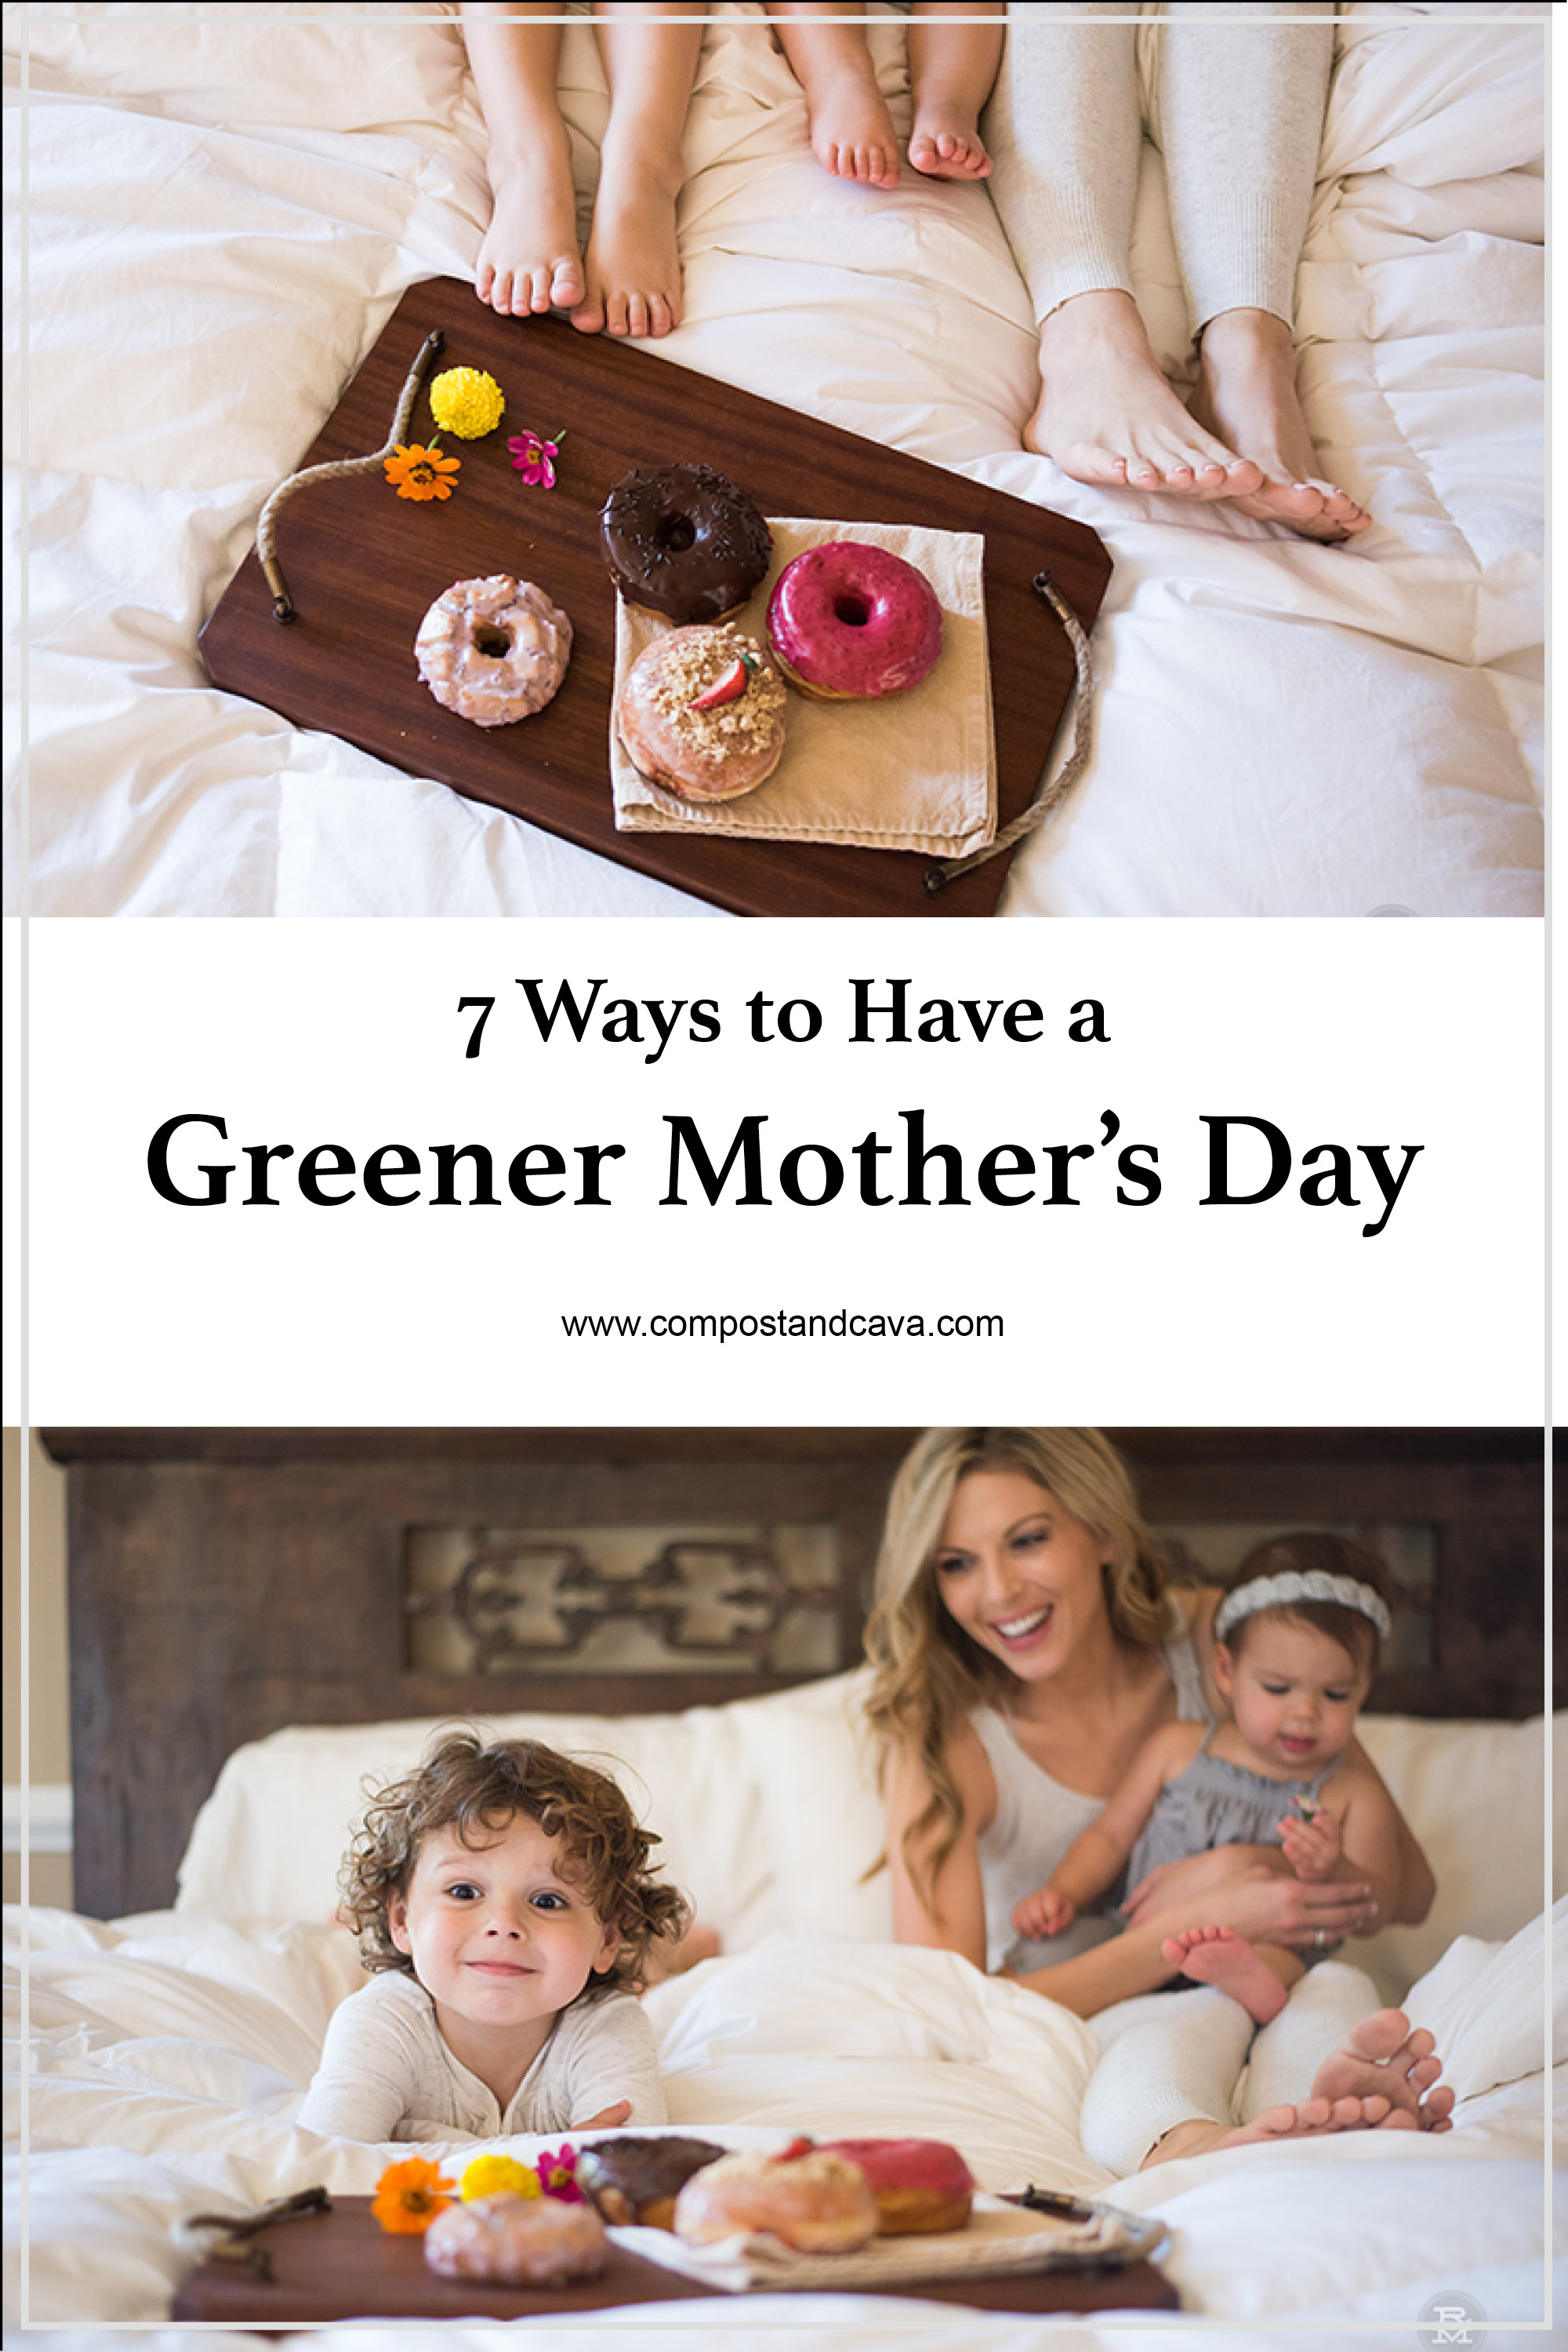 7 Ways to Have a Greener Mother's Day